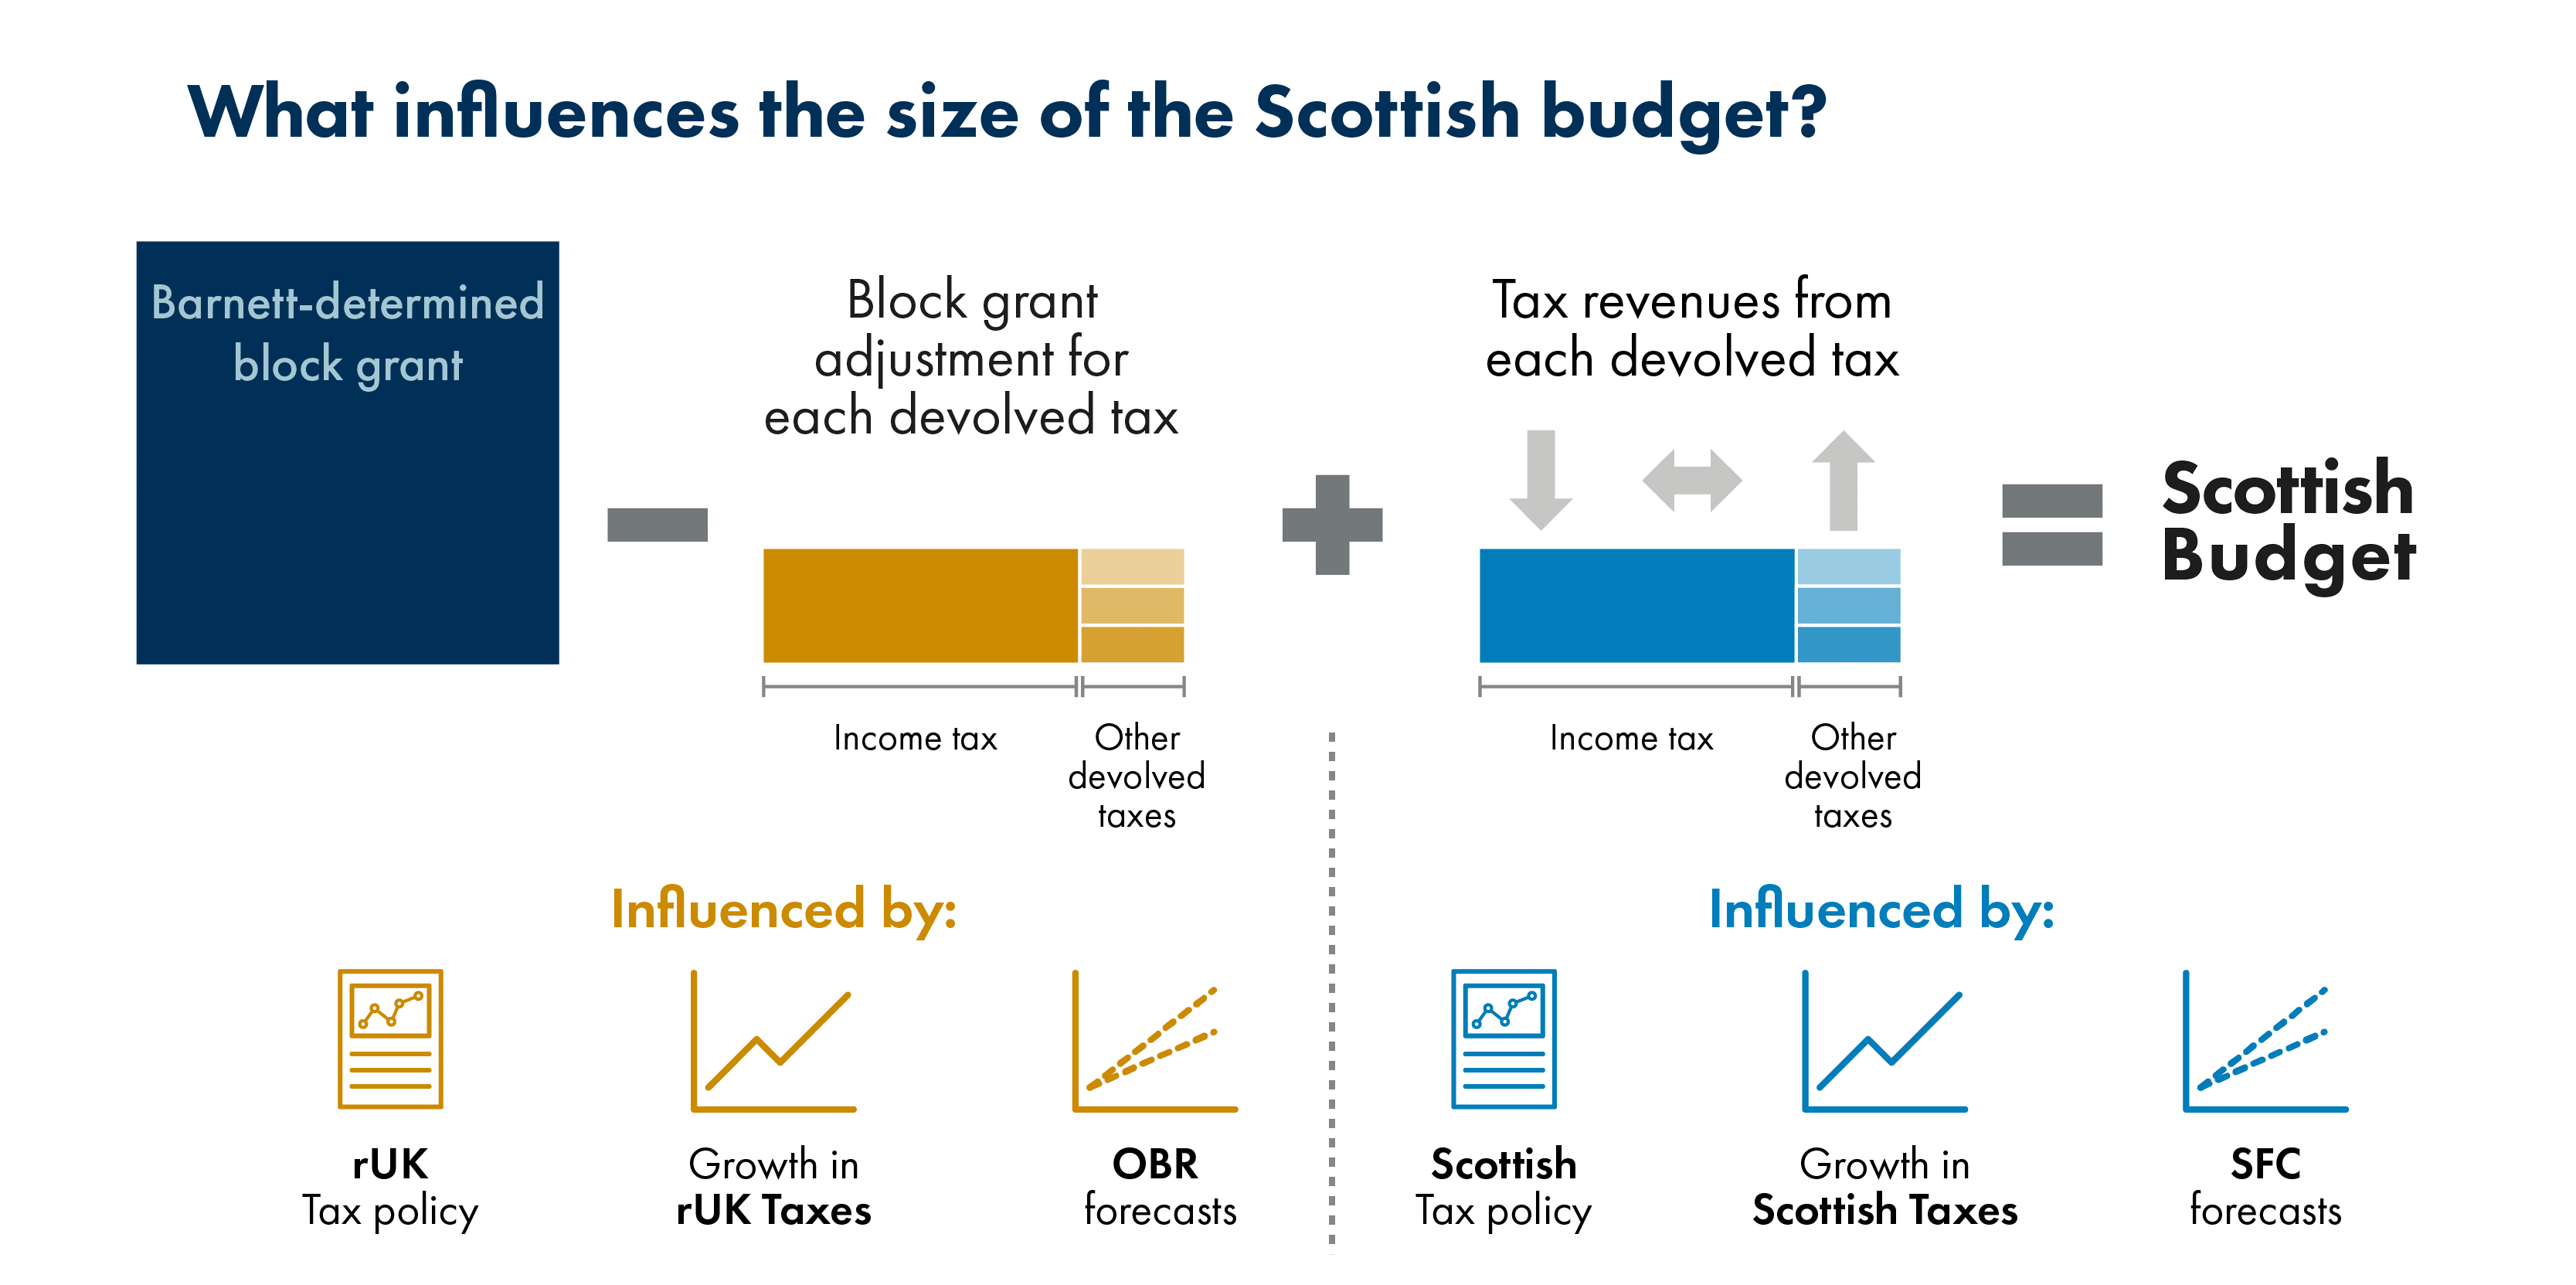 Figure 1 describes what influences the size of the Scottish Budget. Rest of the UK tax policy, growth in Rest of the UK taxes and OBR forecasts influences the block grant adjustment while Scottish tax policy, growth in Scottish taxes and Scottish Fiscal Commission forecasts influence the Tax revenues from each devolved tax.